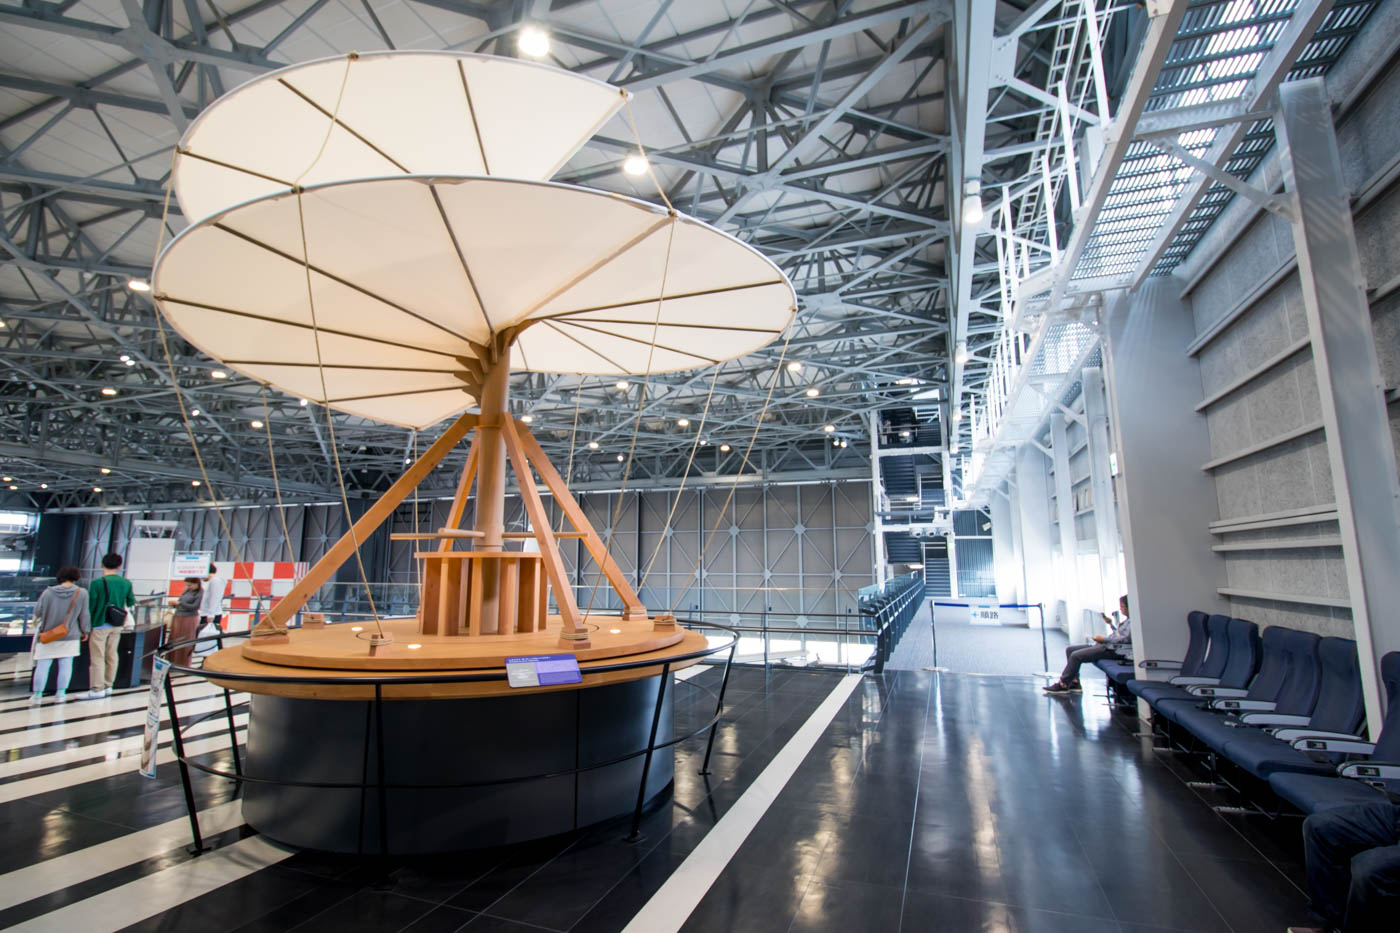 Replica of Leonardo da Vinci's Helicopter